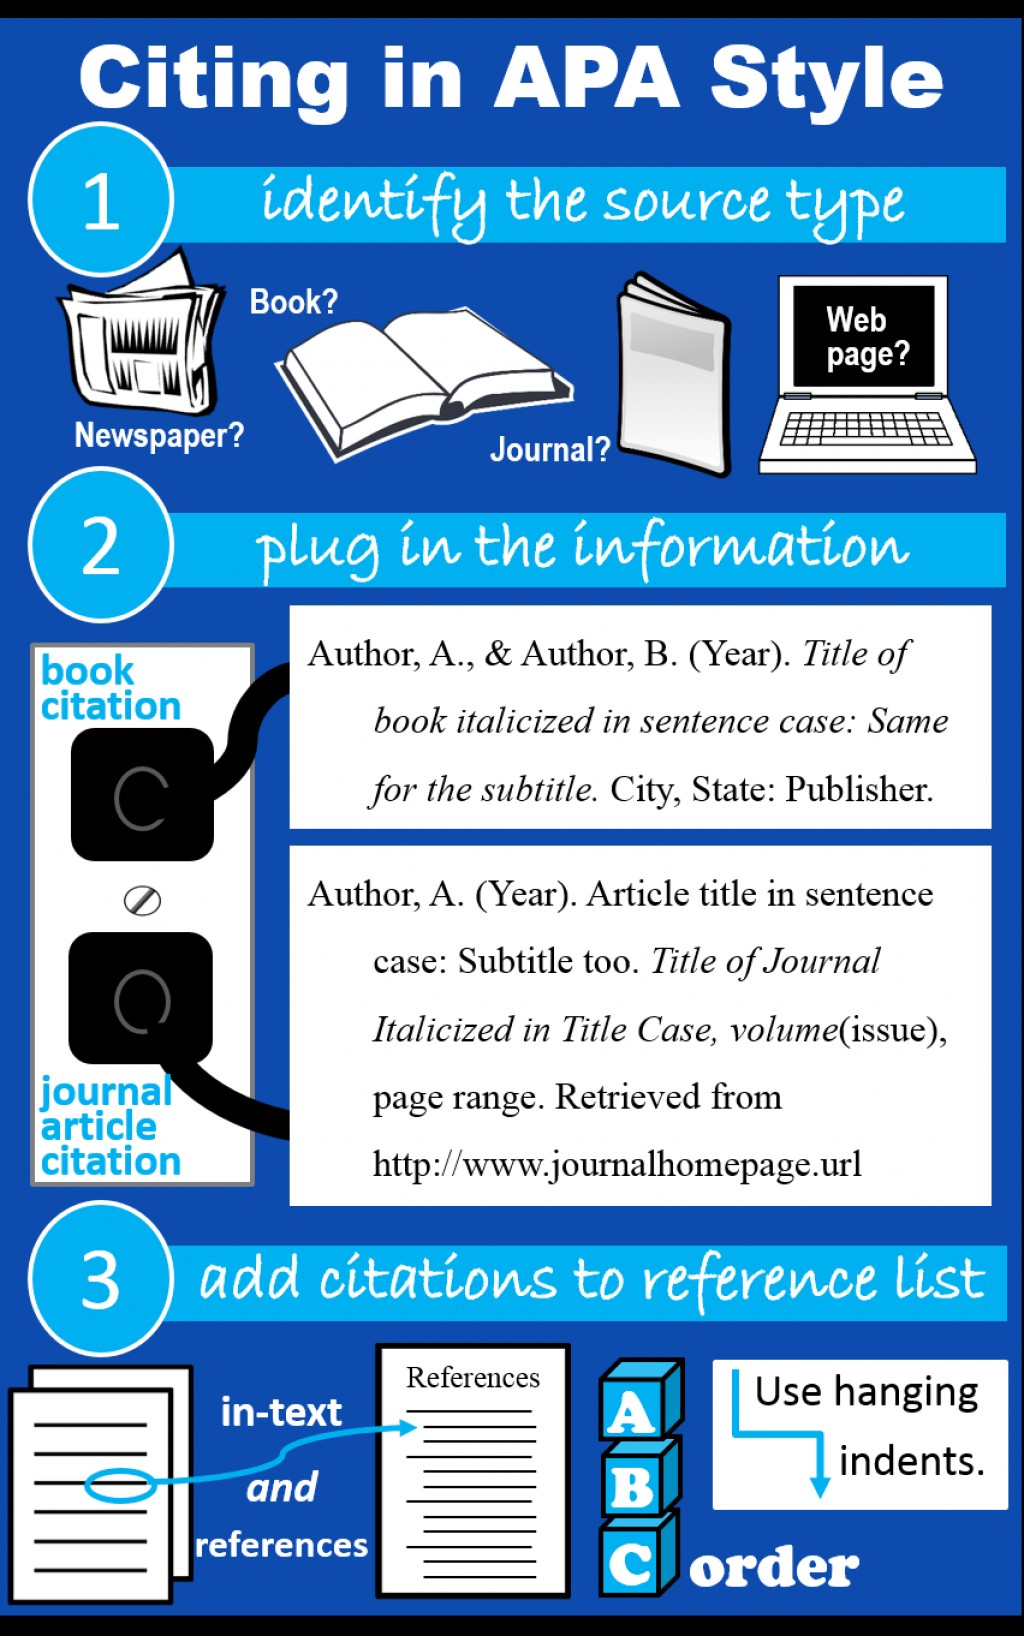 018 Citing Sources In Research Paper Apa Infographic Astounding Paragraph Two One Large